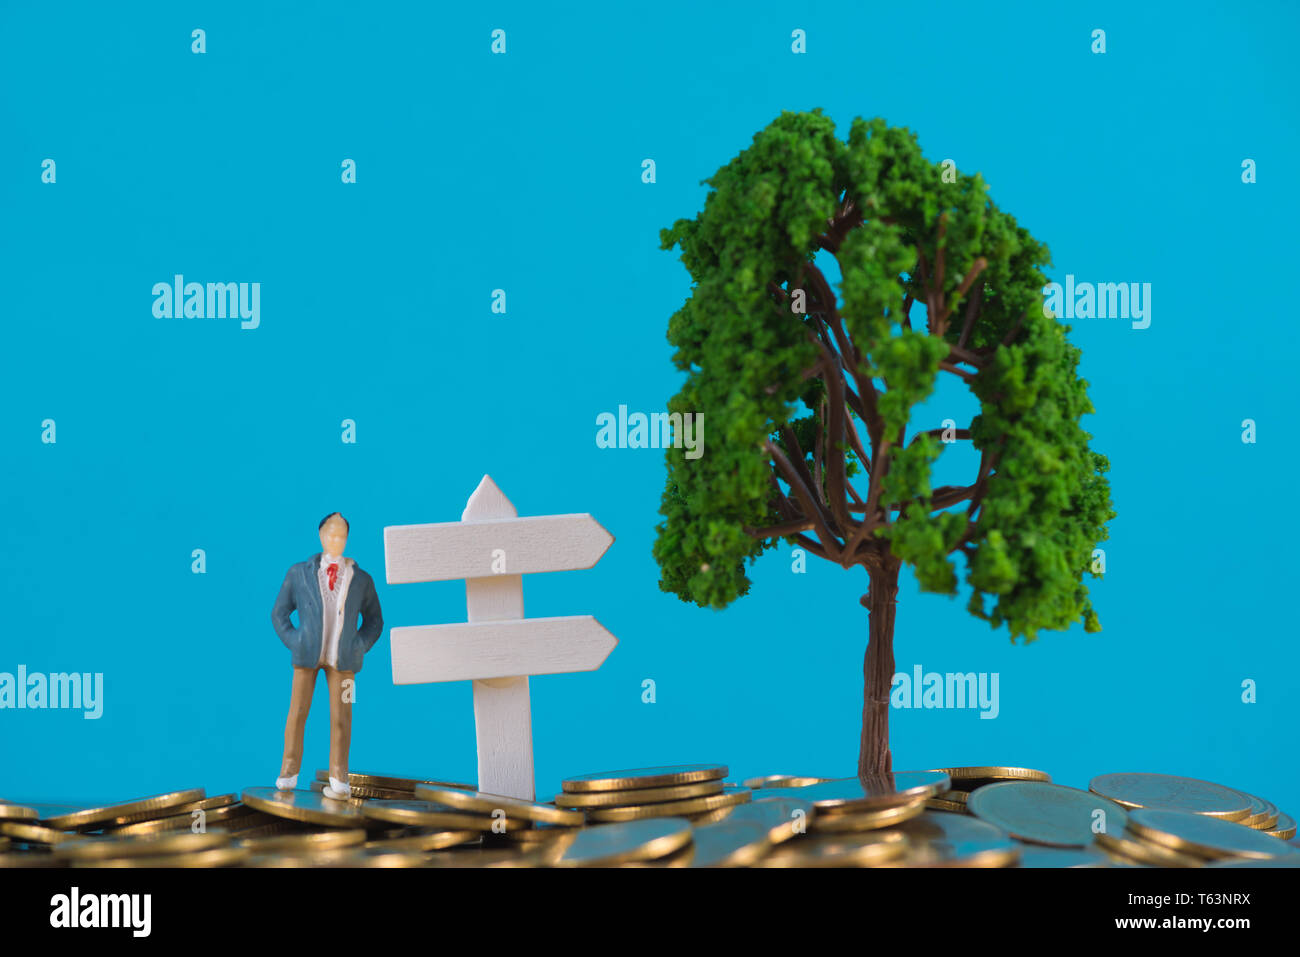 Figure miniature businessman or small people investor standing on coin stack with white wooden board sign and little tree decoration, for money and fi - Stock Image